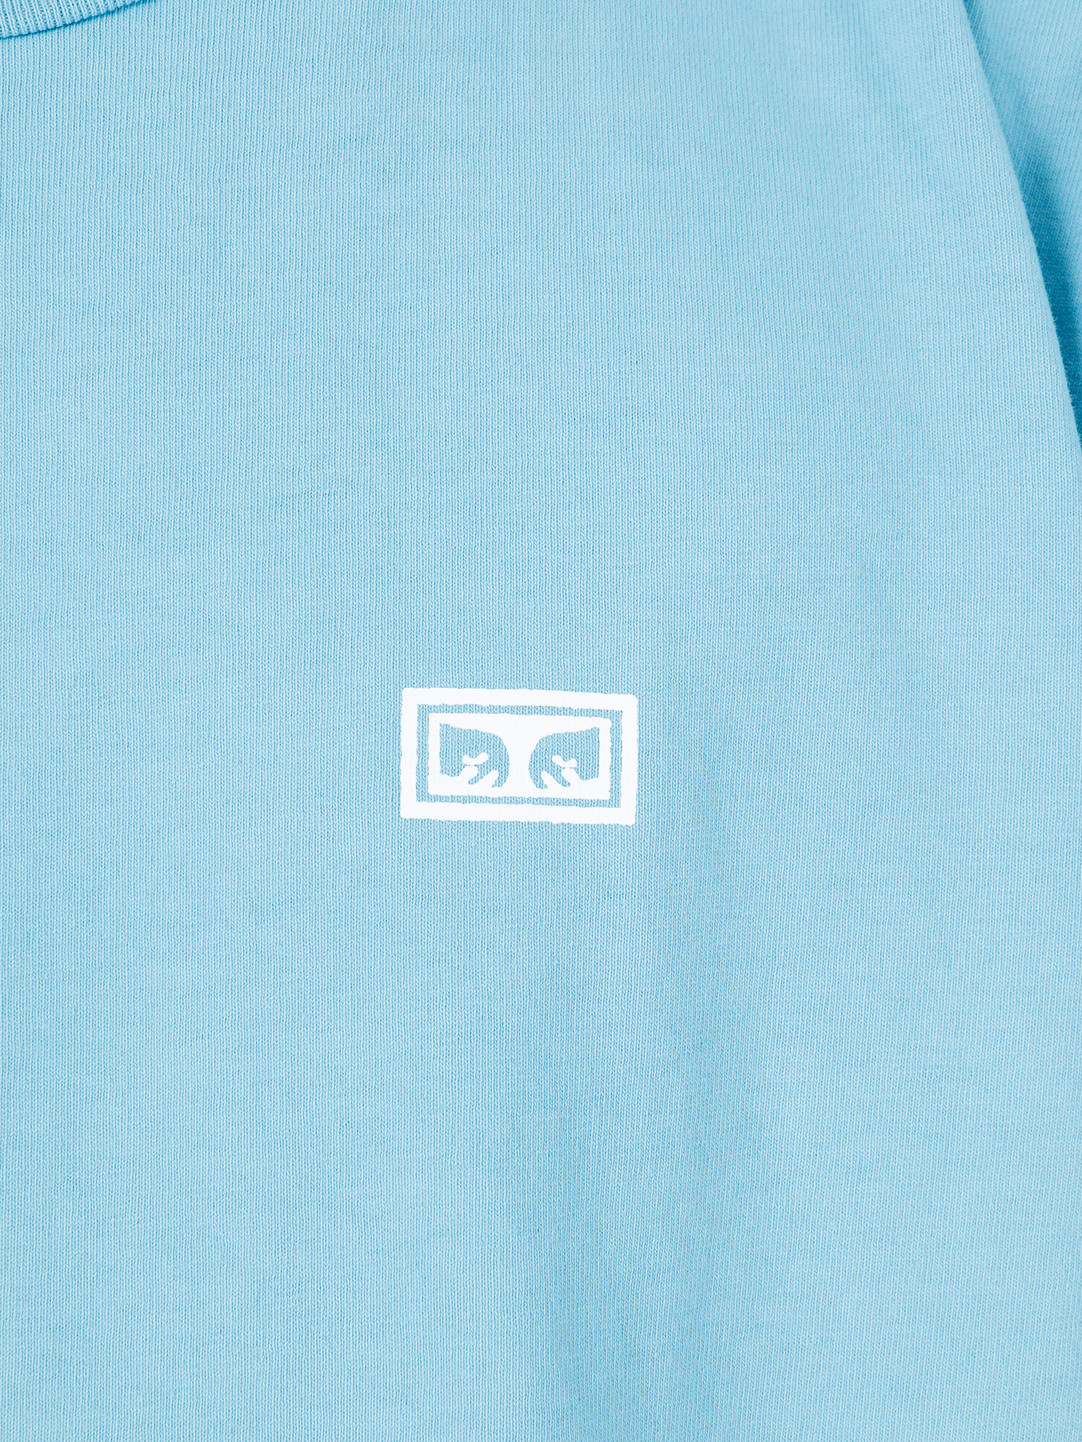 Obey Obey Eyes 3 Heavy Weight Classic Box T-Shirt Pool 166911826-POL